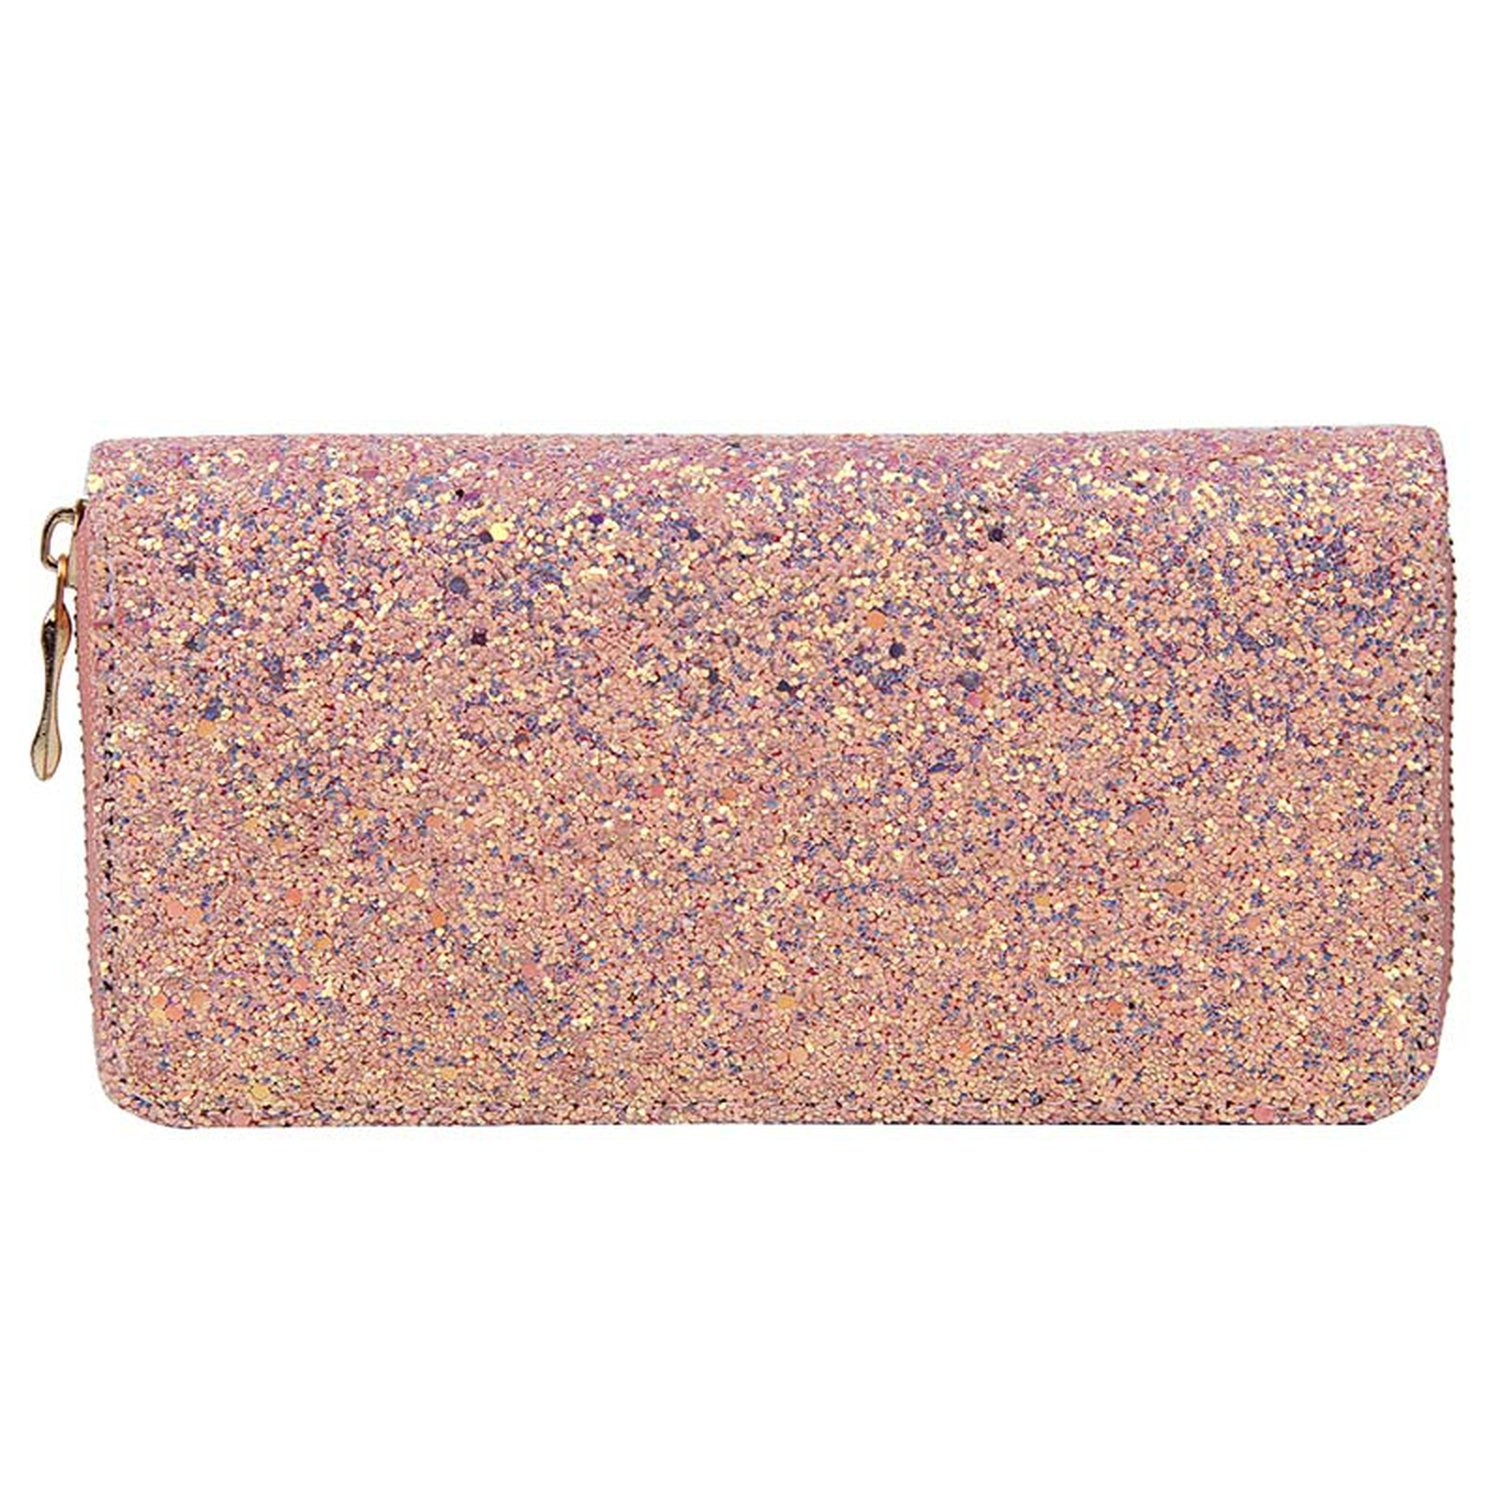 Souiey-shop wallets ACCESSORY レディース B07FQLNQ1N ライトピンク One Size